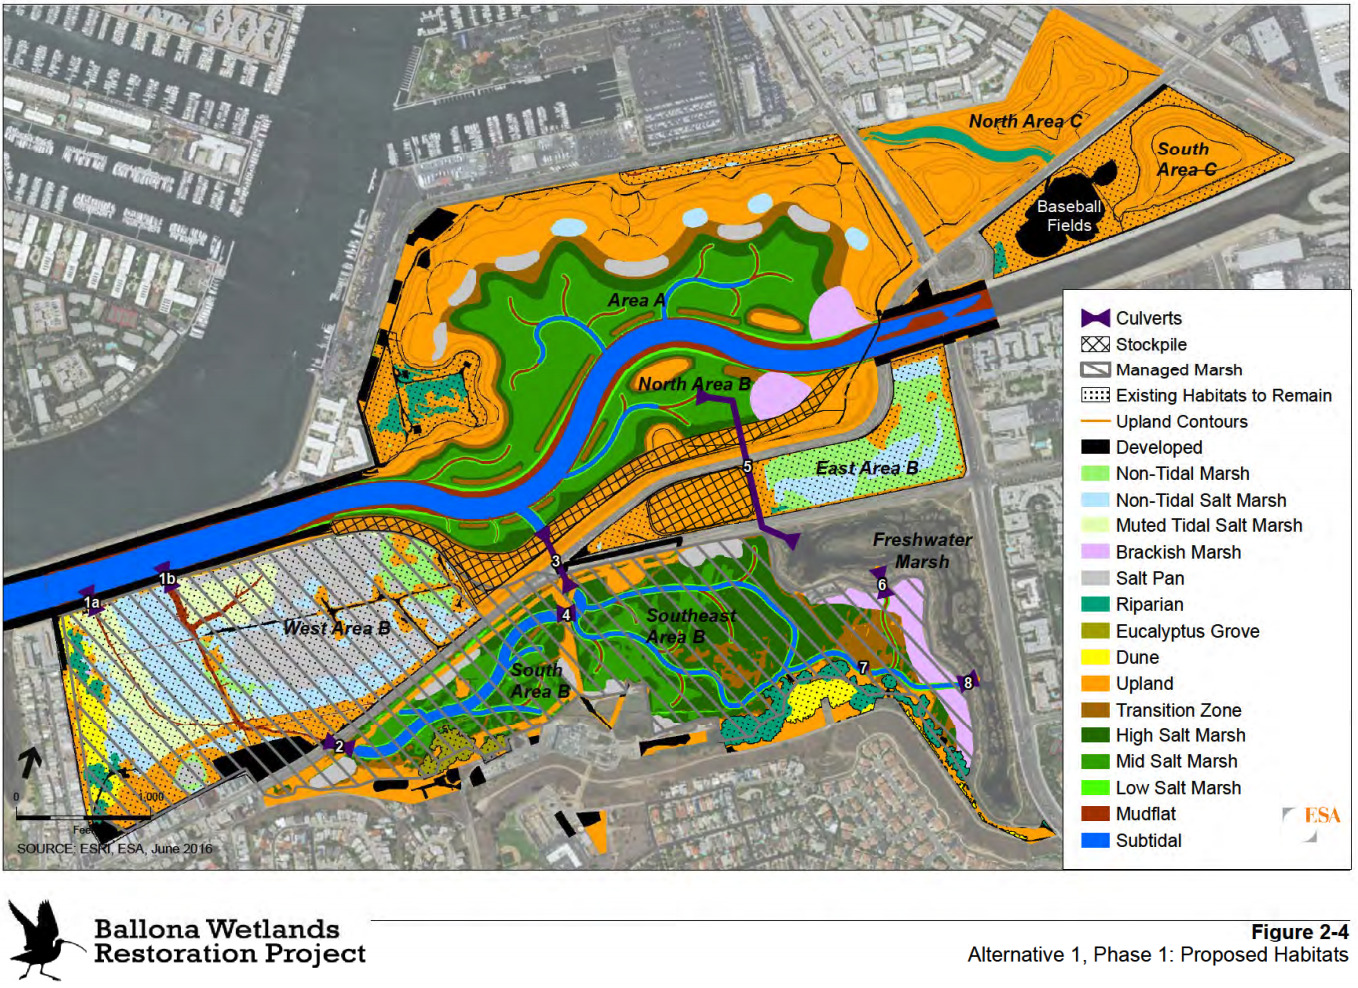 Ballona Wetlands Restoration Plan